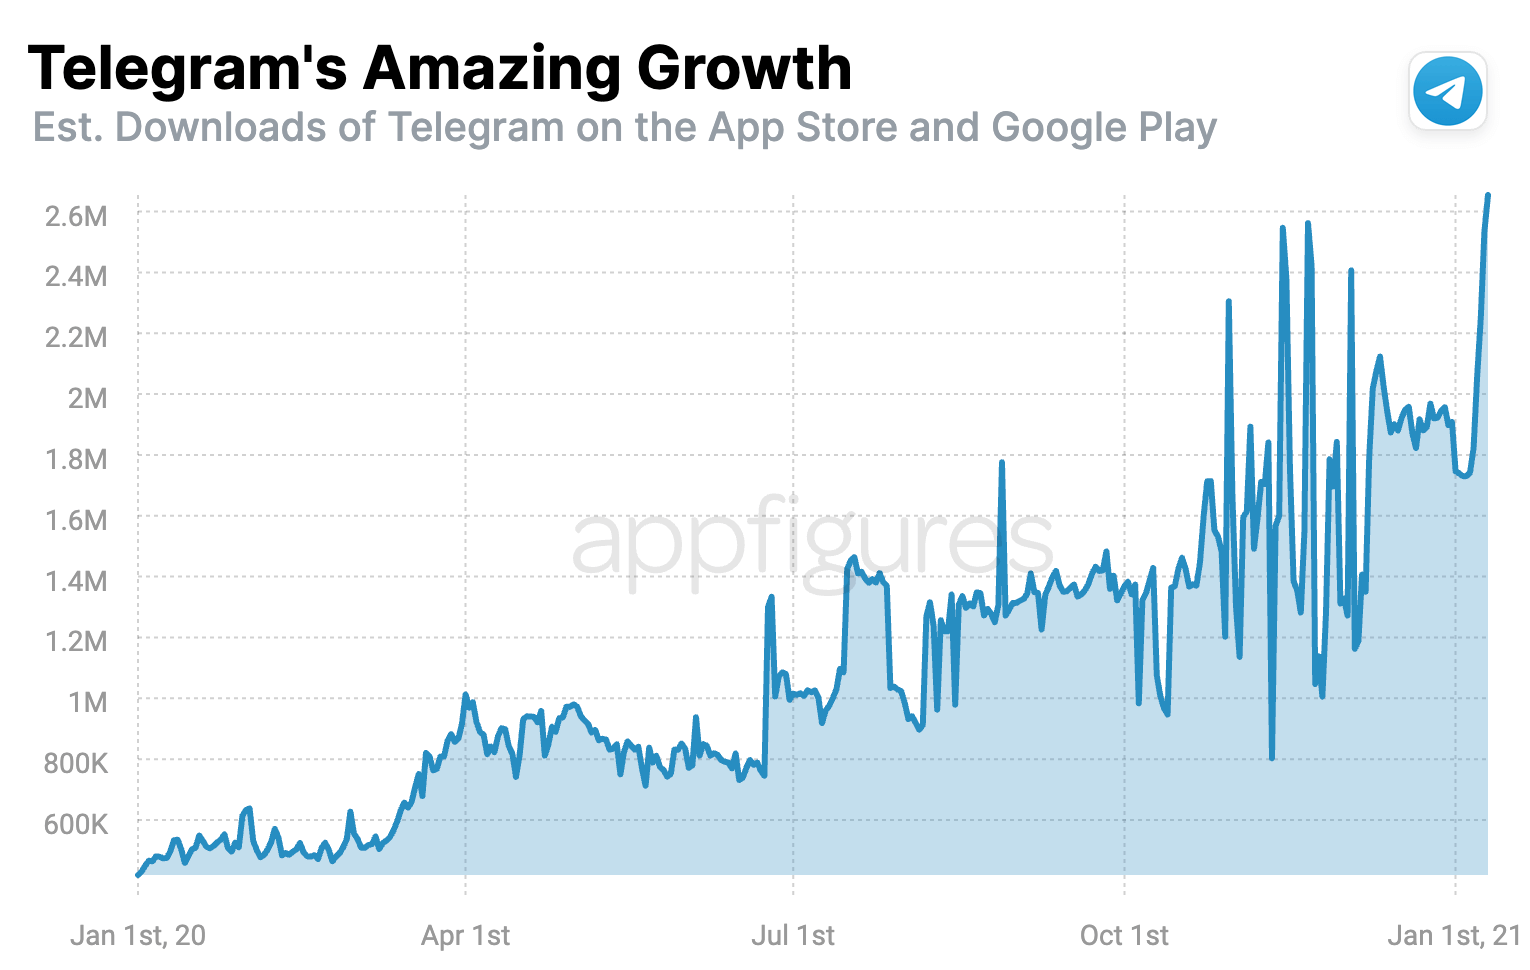 Downloads of Telegram on the App Store and Google Play in 2020